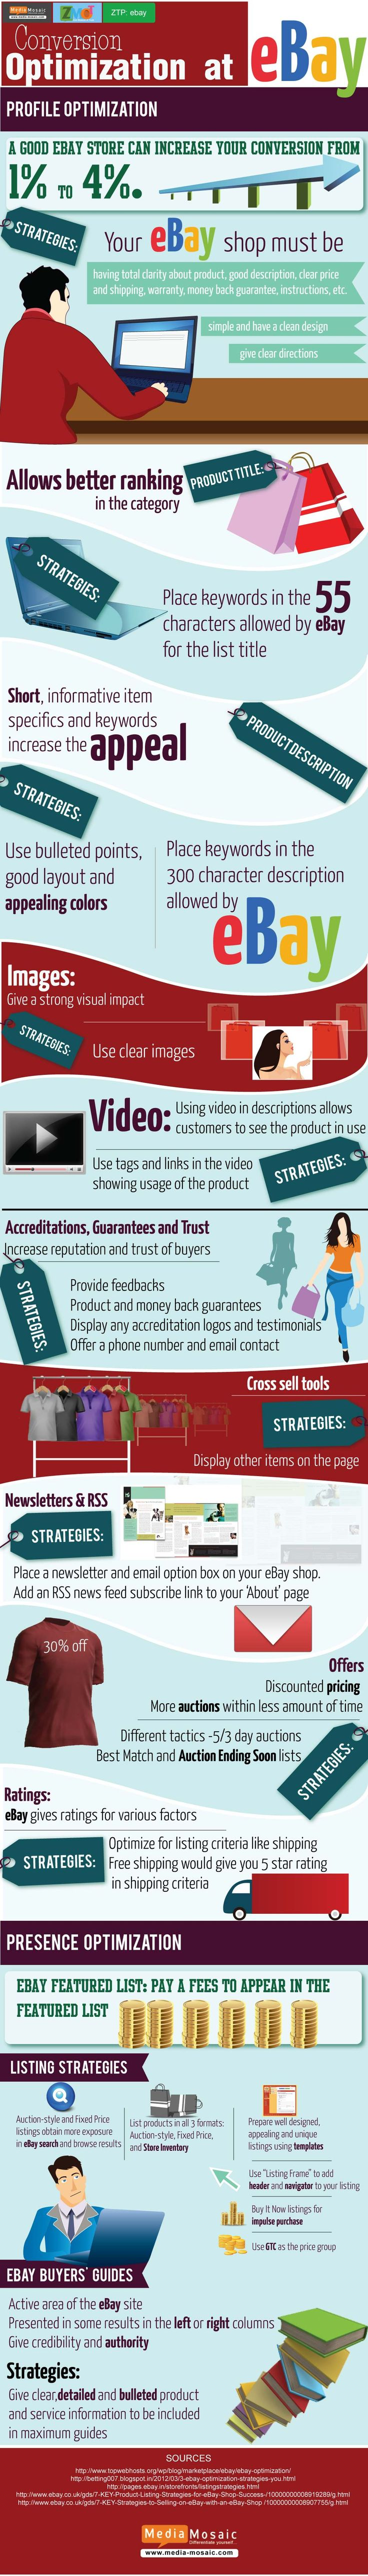 From Media Mosaic - infographic - Conversion Optimization at eBay - strategies to optimize your product profiles on eBay